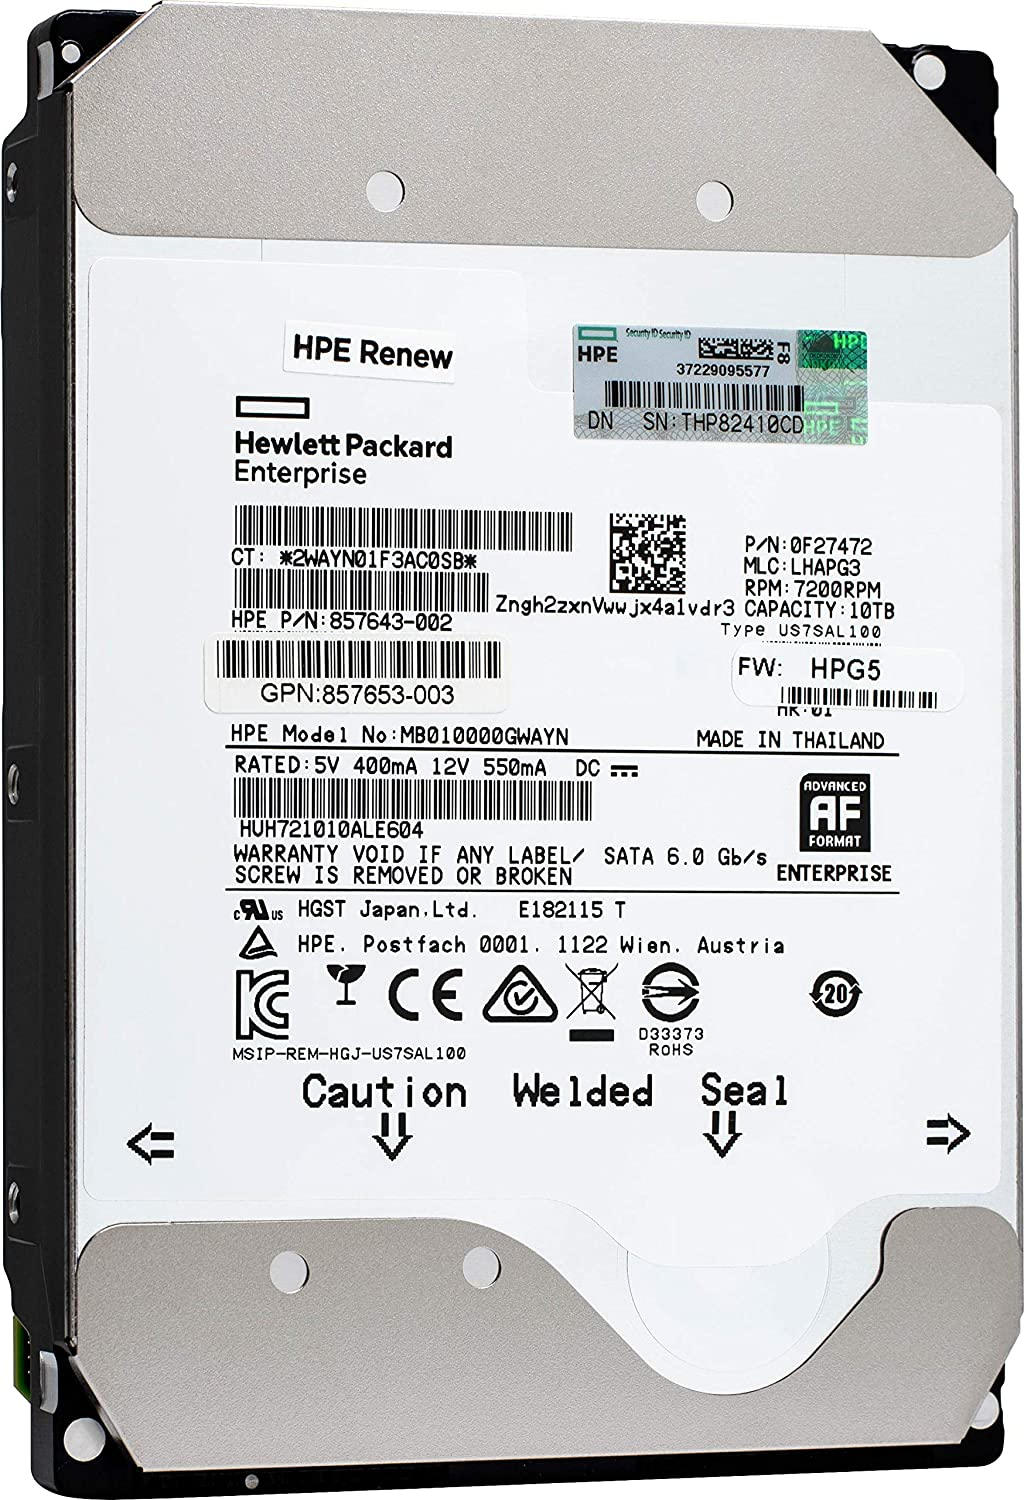 HGST Ultrastar He10 10TB SATA 6Gb/s 7200 RPM 256MB Cache 3.5-Inch Enterprise Hard Drive (HUH721010ALE604) (Renewed)